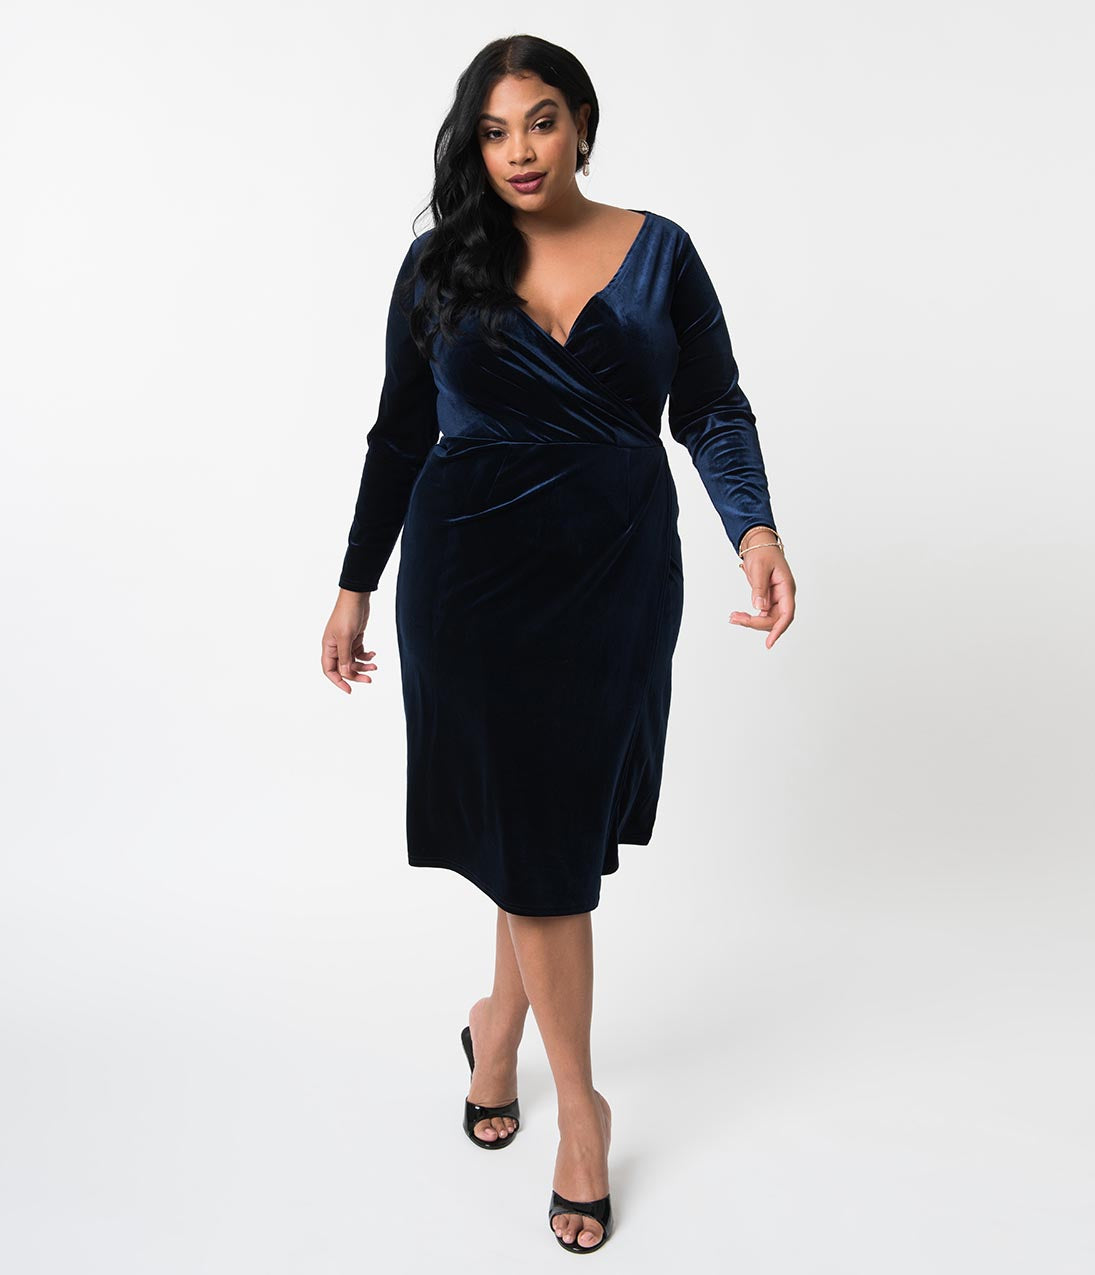 1950s Dresses, 50s Dresses | 1950s Style Dresses Unique Vintage Plus Size Navy Blue Velvet Long Sleeve Damsel Wiggle Dress $98.00 AT vintagedancer.com